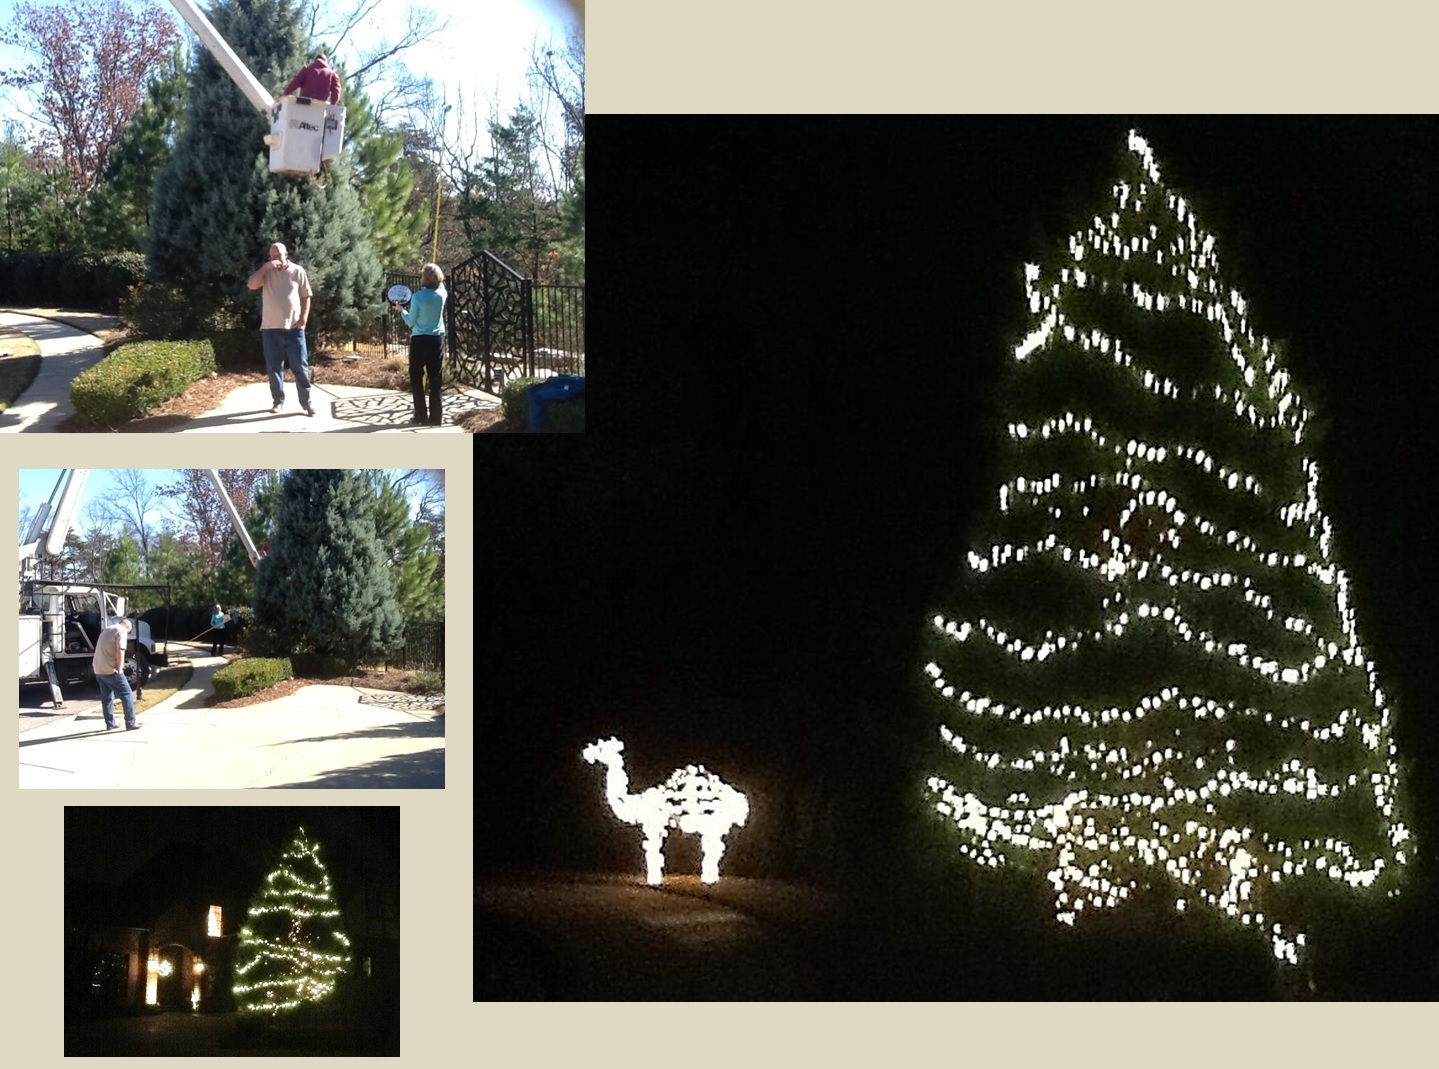 Christmas lights are a big deal at my house, as these photos show. The day after Thanksgiving, friends with access to a bucket truck helped boost the wattage this year with some additional bulbs. At bottom left, you can see the wreath on the door and the tree on the stair landing. But the main photo at right gives you the view as you turn onto my street. The camel is a staple of our circle.